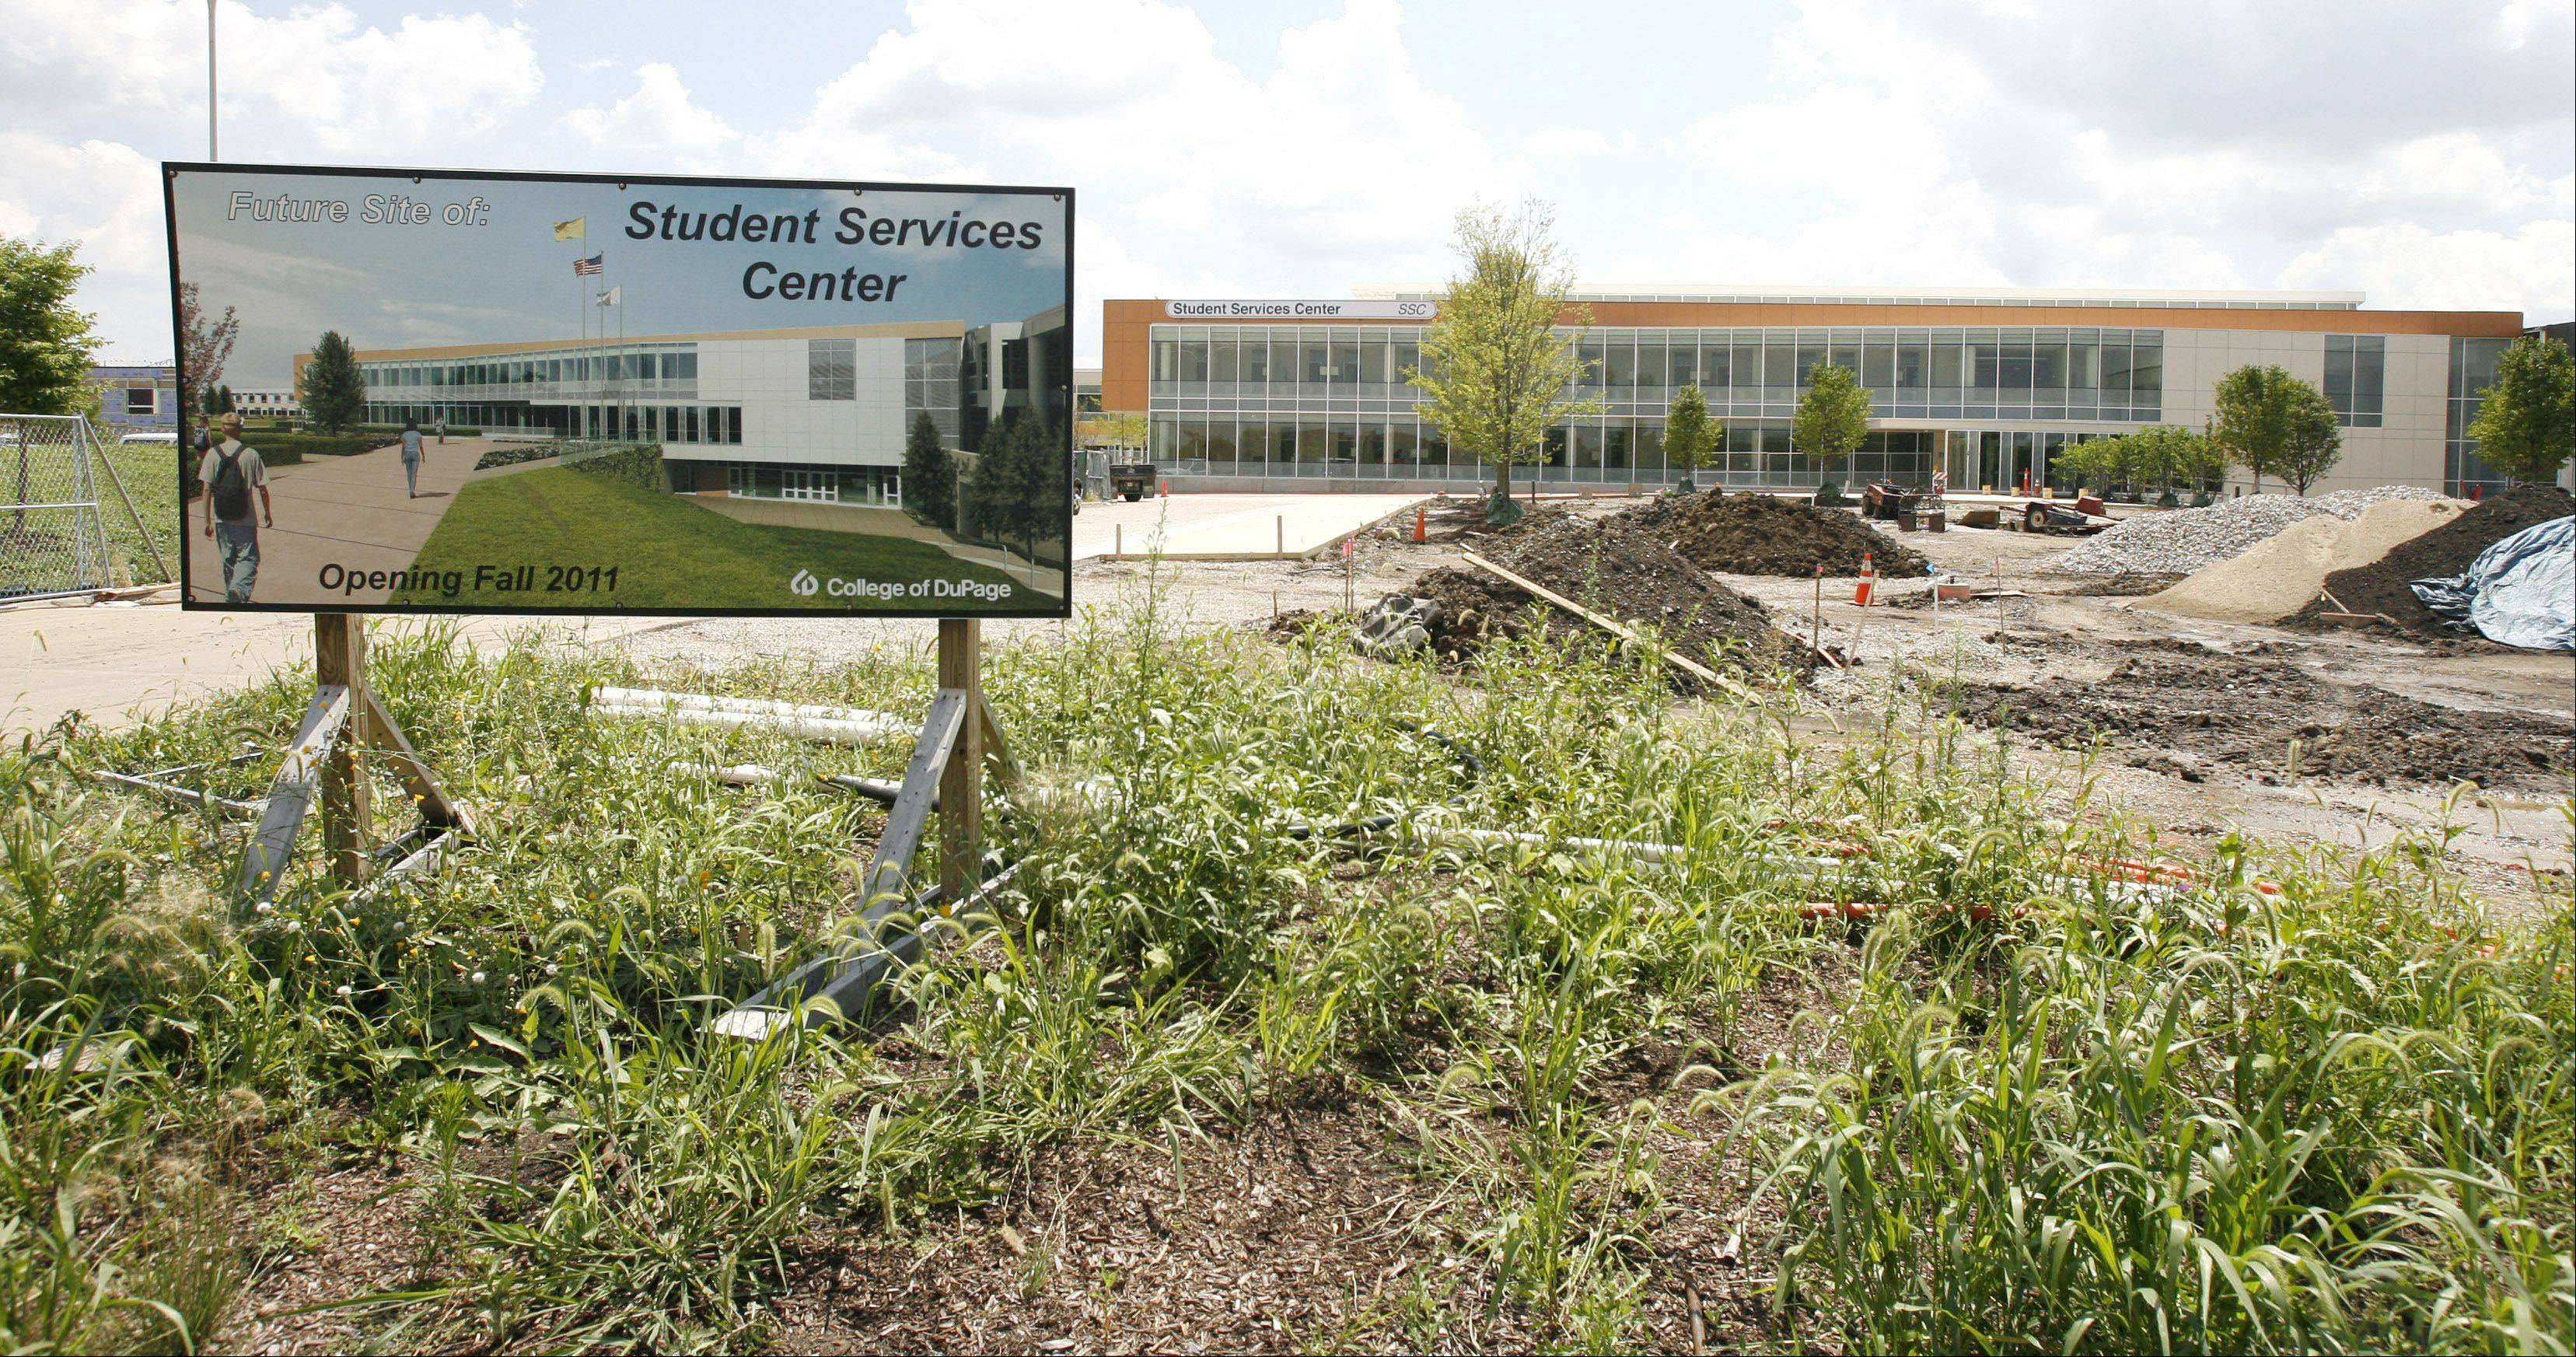 The Student Services Center is one of the buildings on the College of DuPage campus scheduled to open following resolution of a dispute over occupancy permits with Glen Ellyn officials.